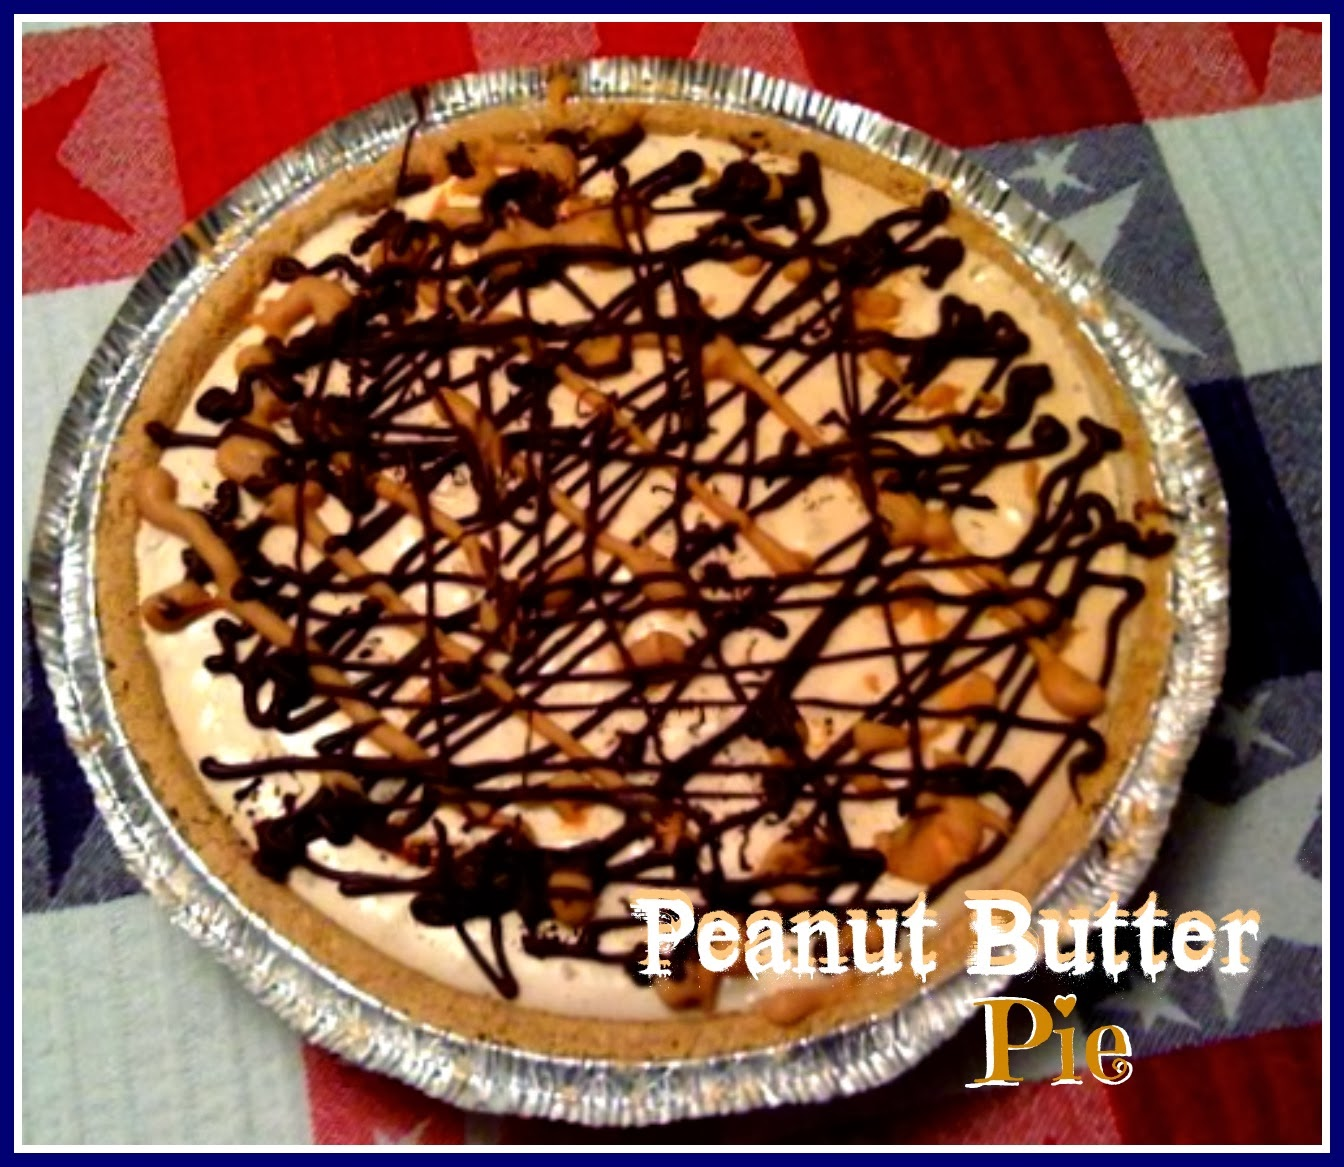 ... pie with cream peanut butter pie smooth and creamy peanut butter pie